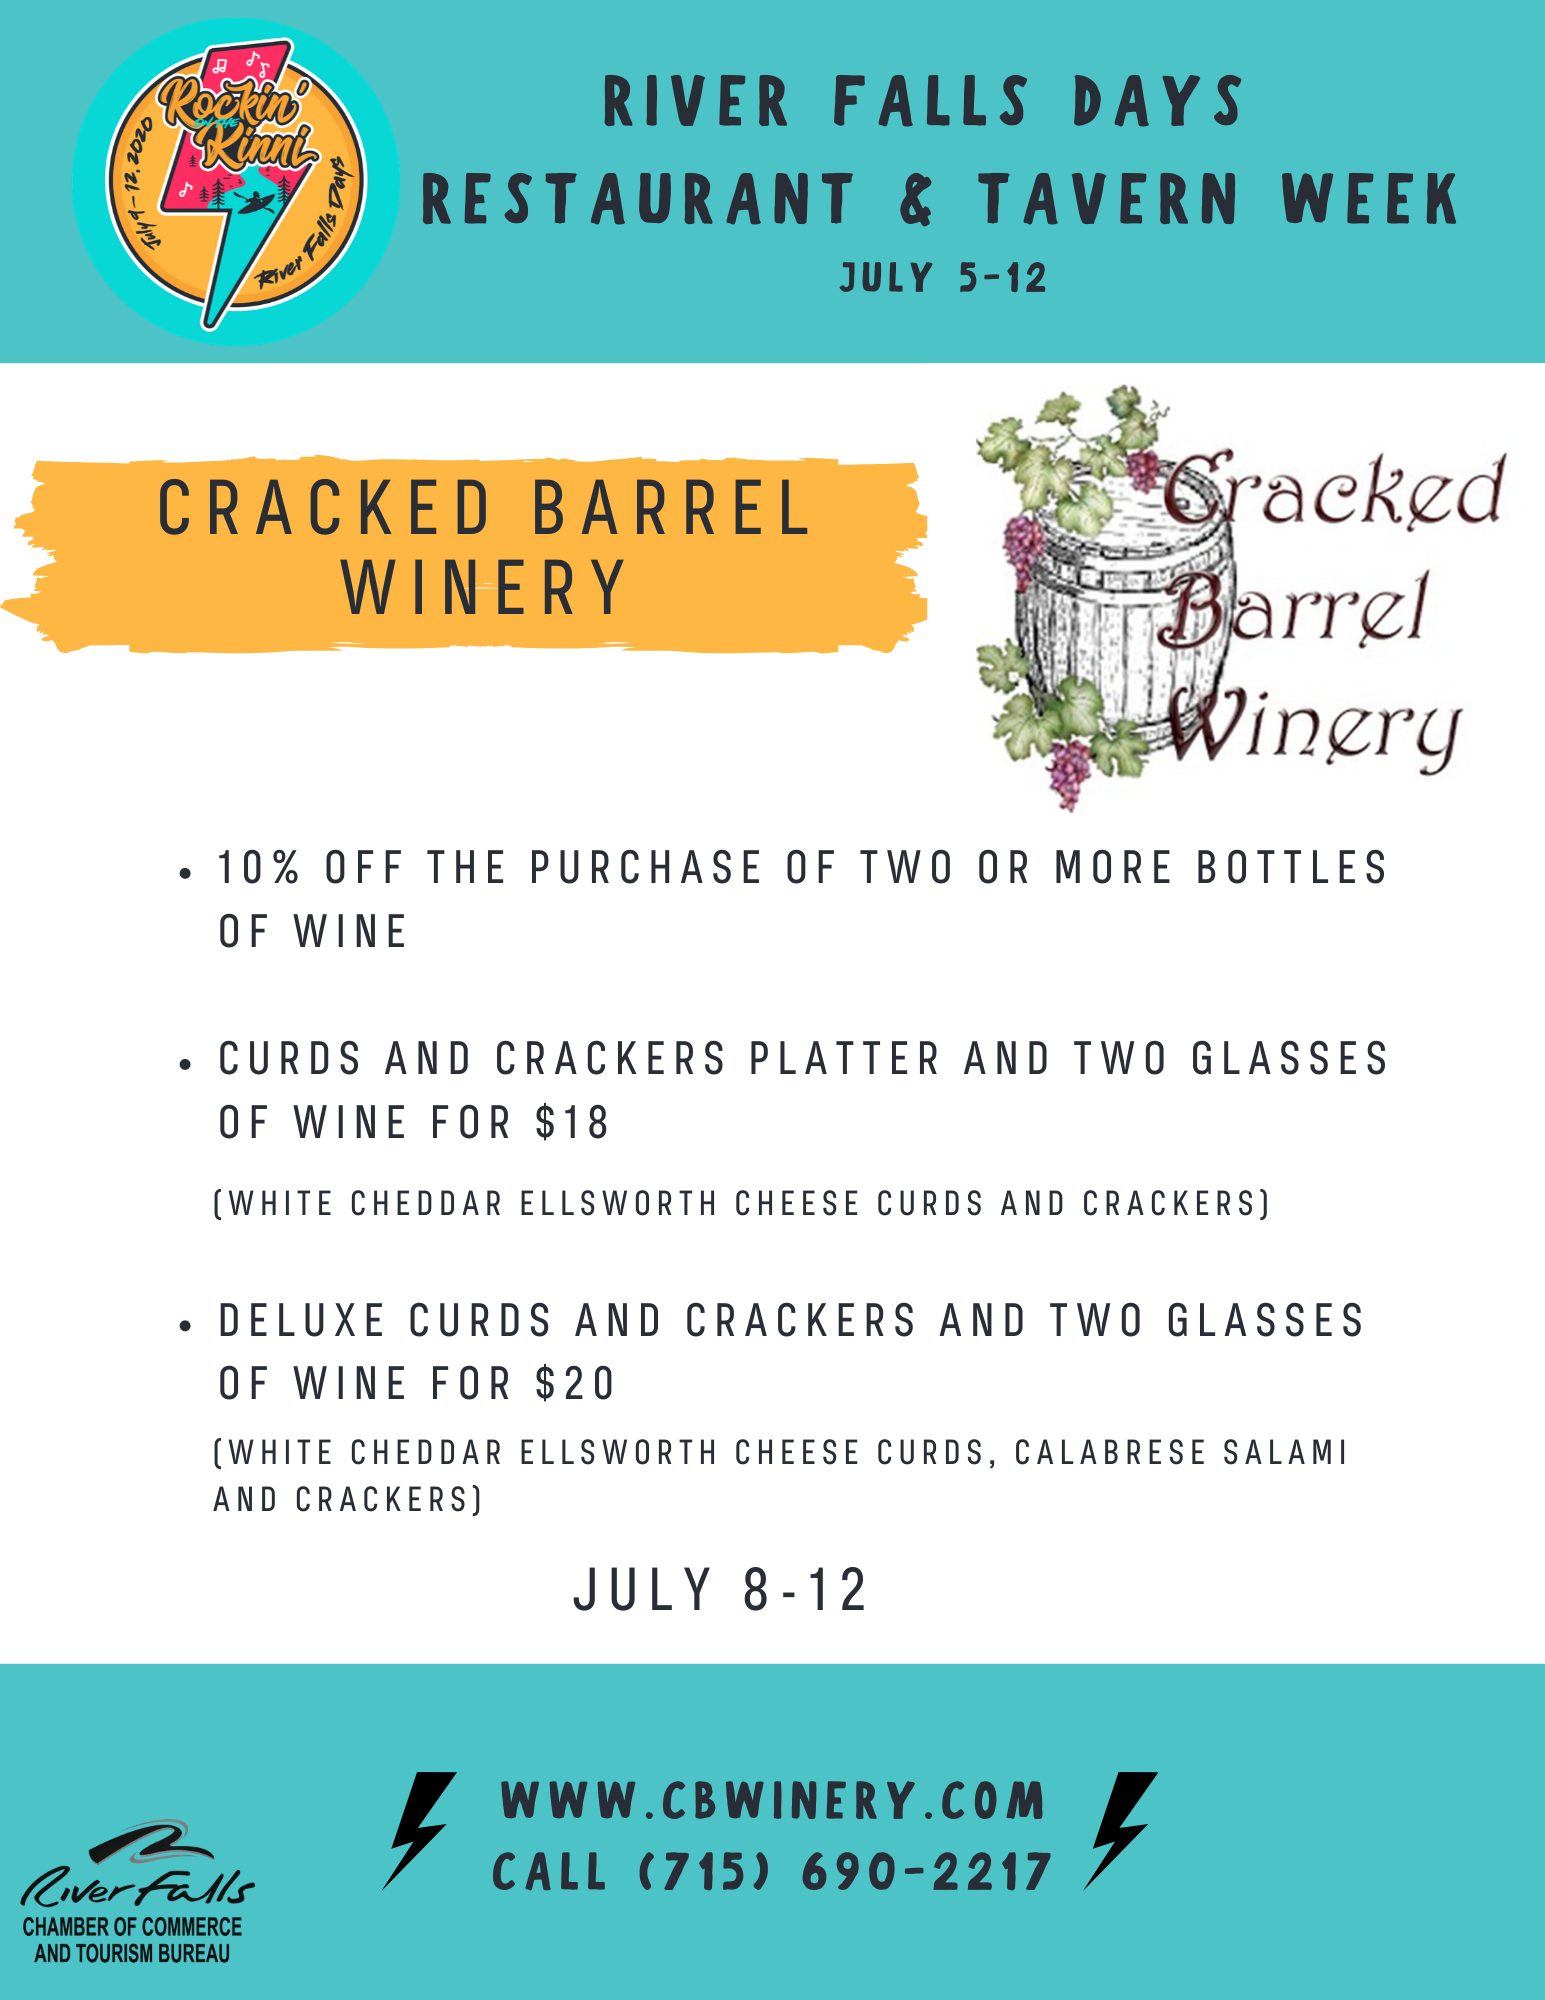 Cracked Barrel Winery